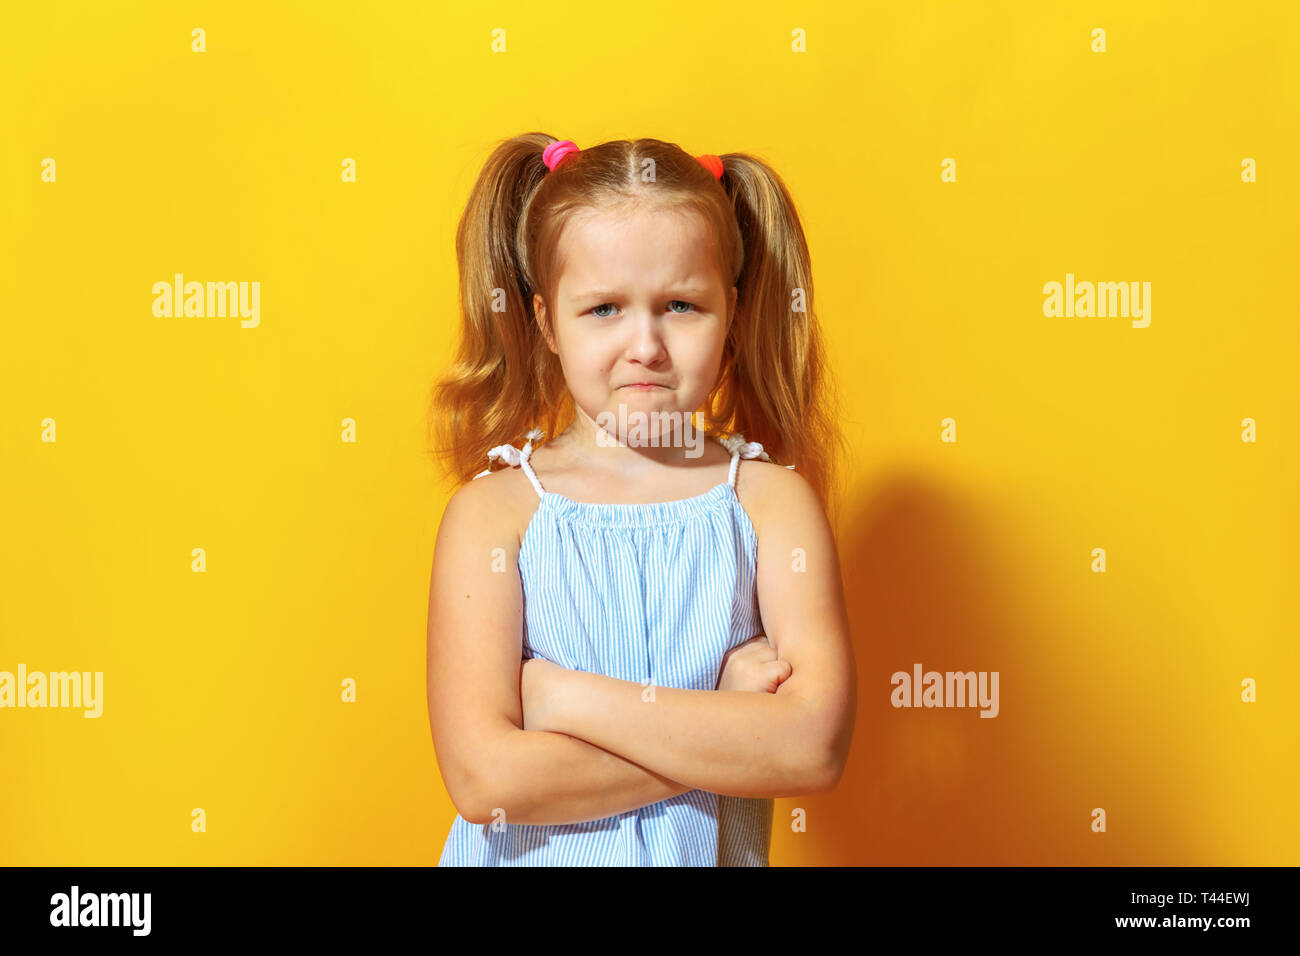 Closeup portrait of upset little girl on yellow background. The child crossed his arms and pouted his lips. - Stock Image